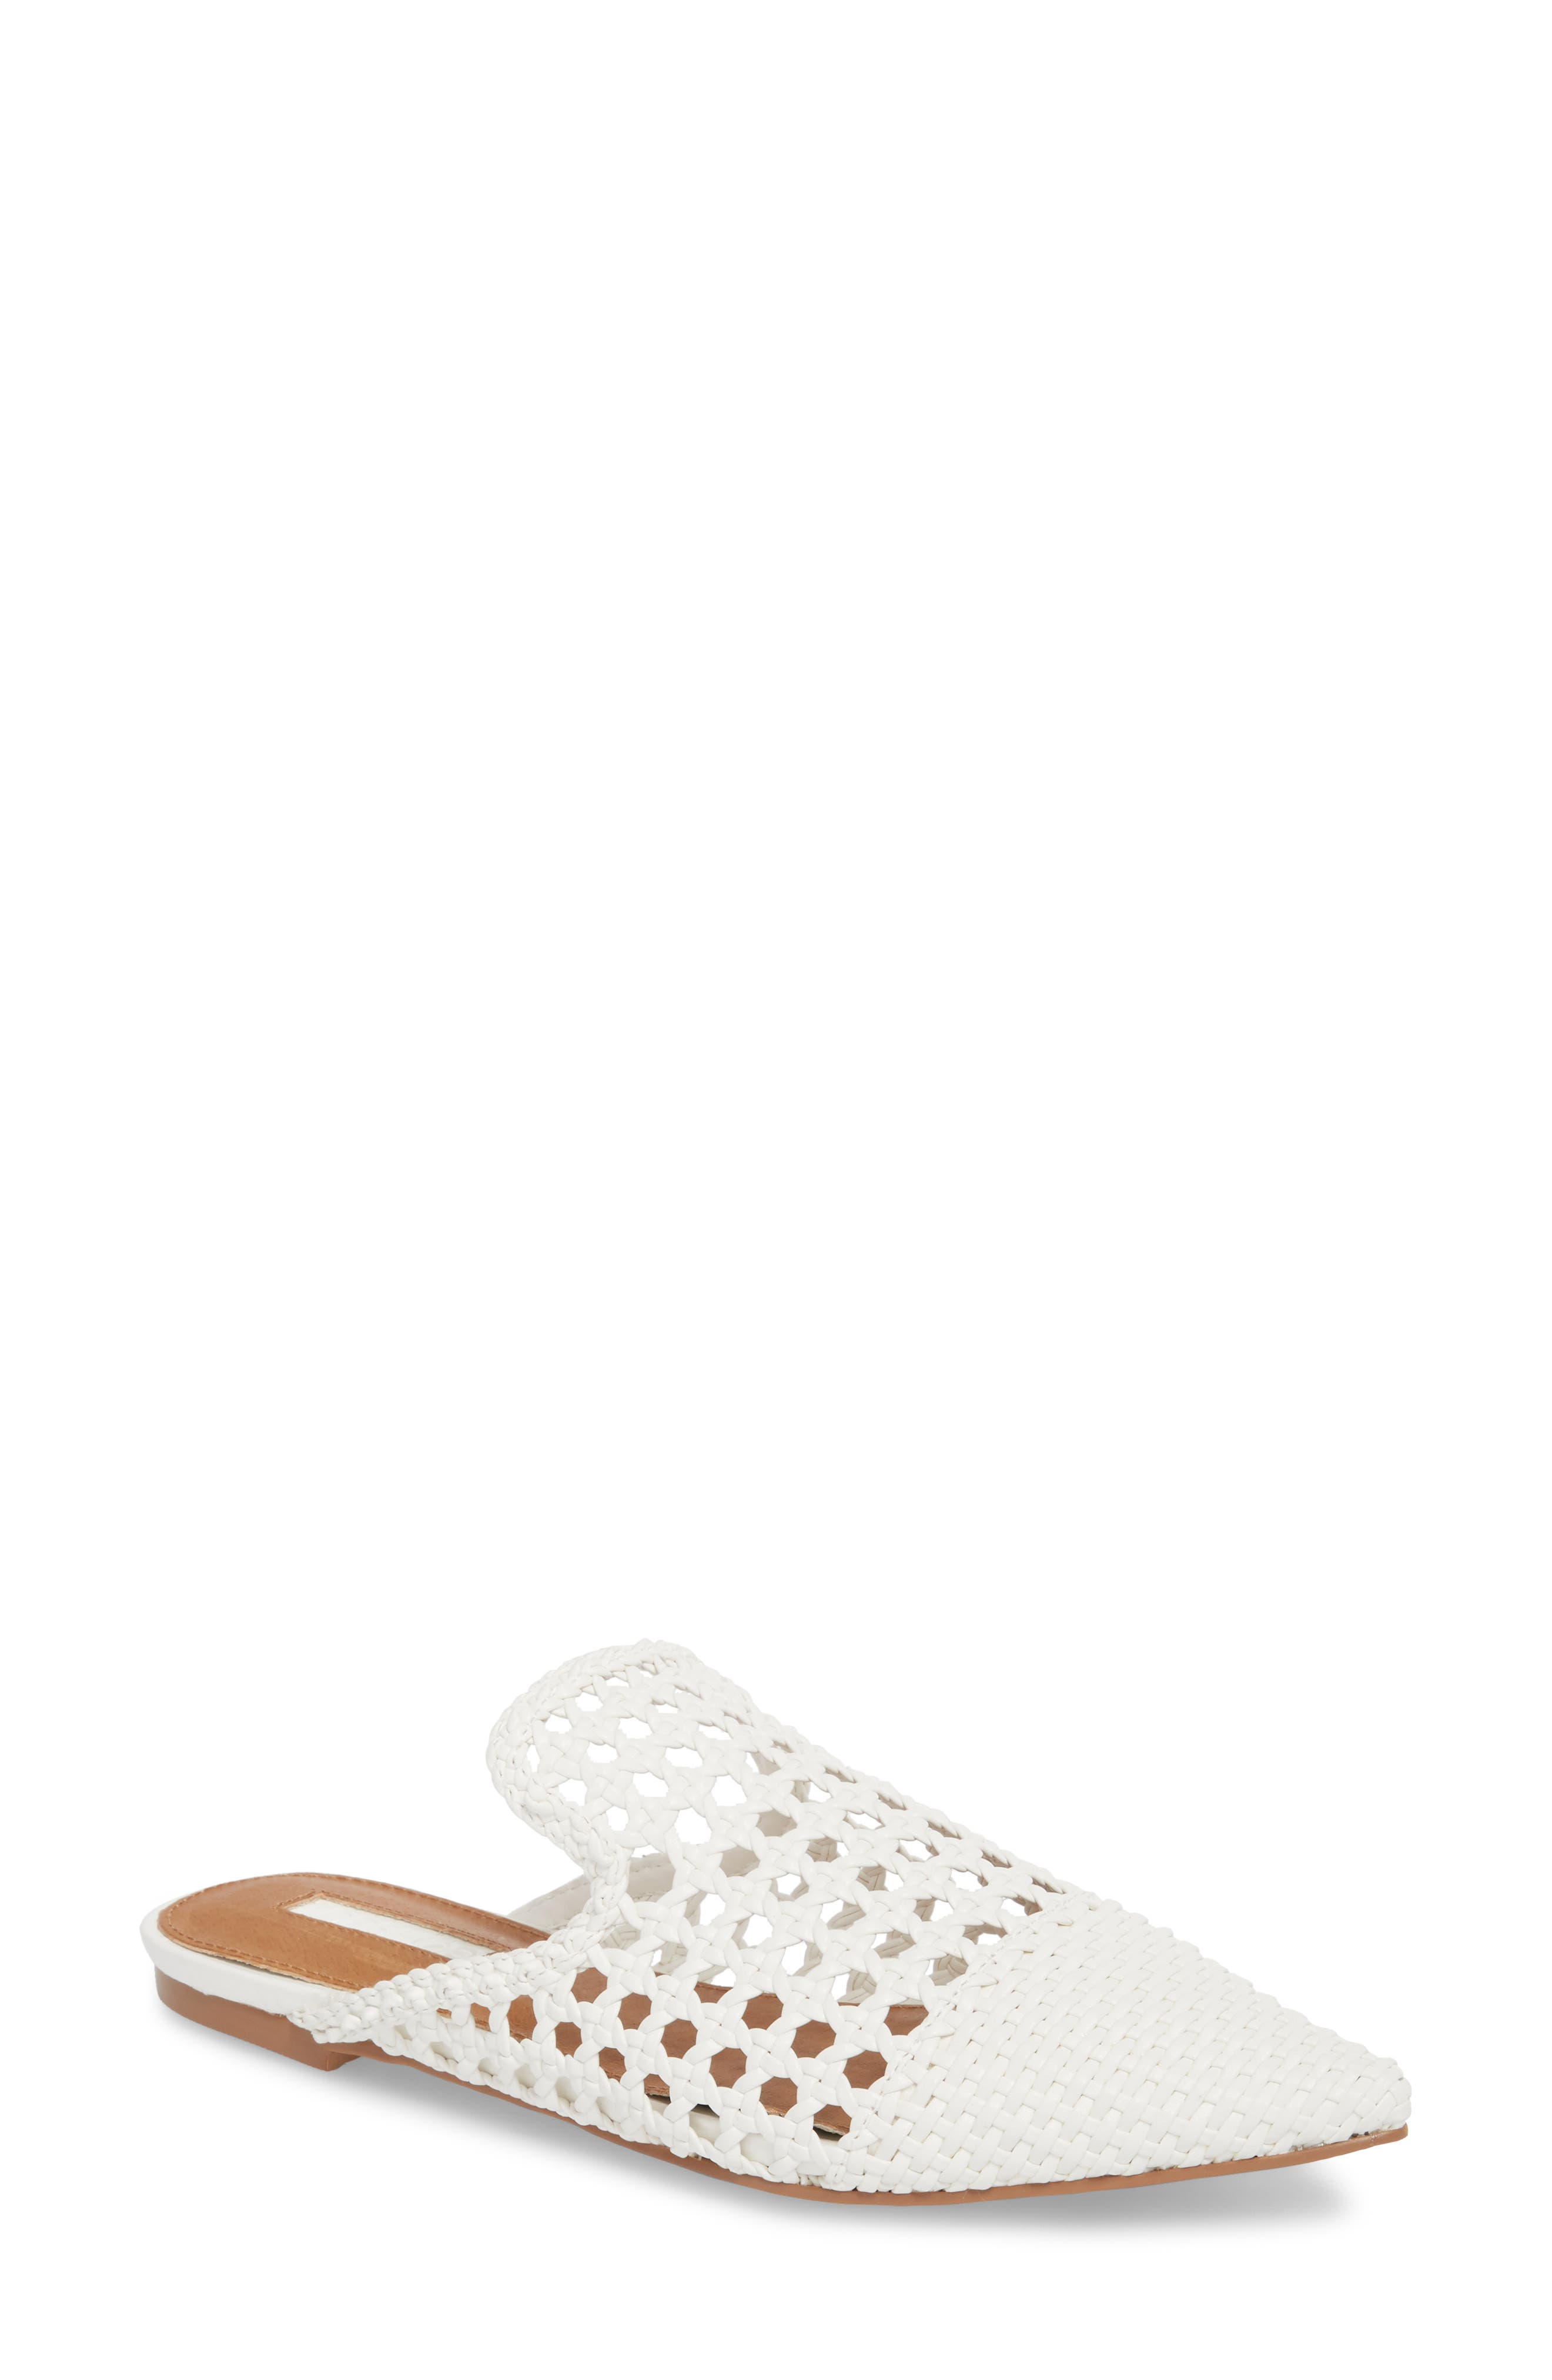 Knot Woven Mule,                         Main,                         color, White